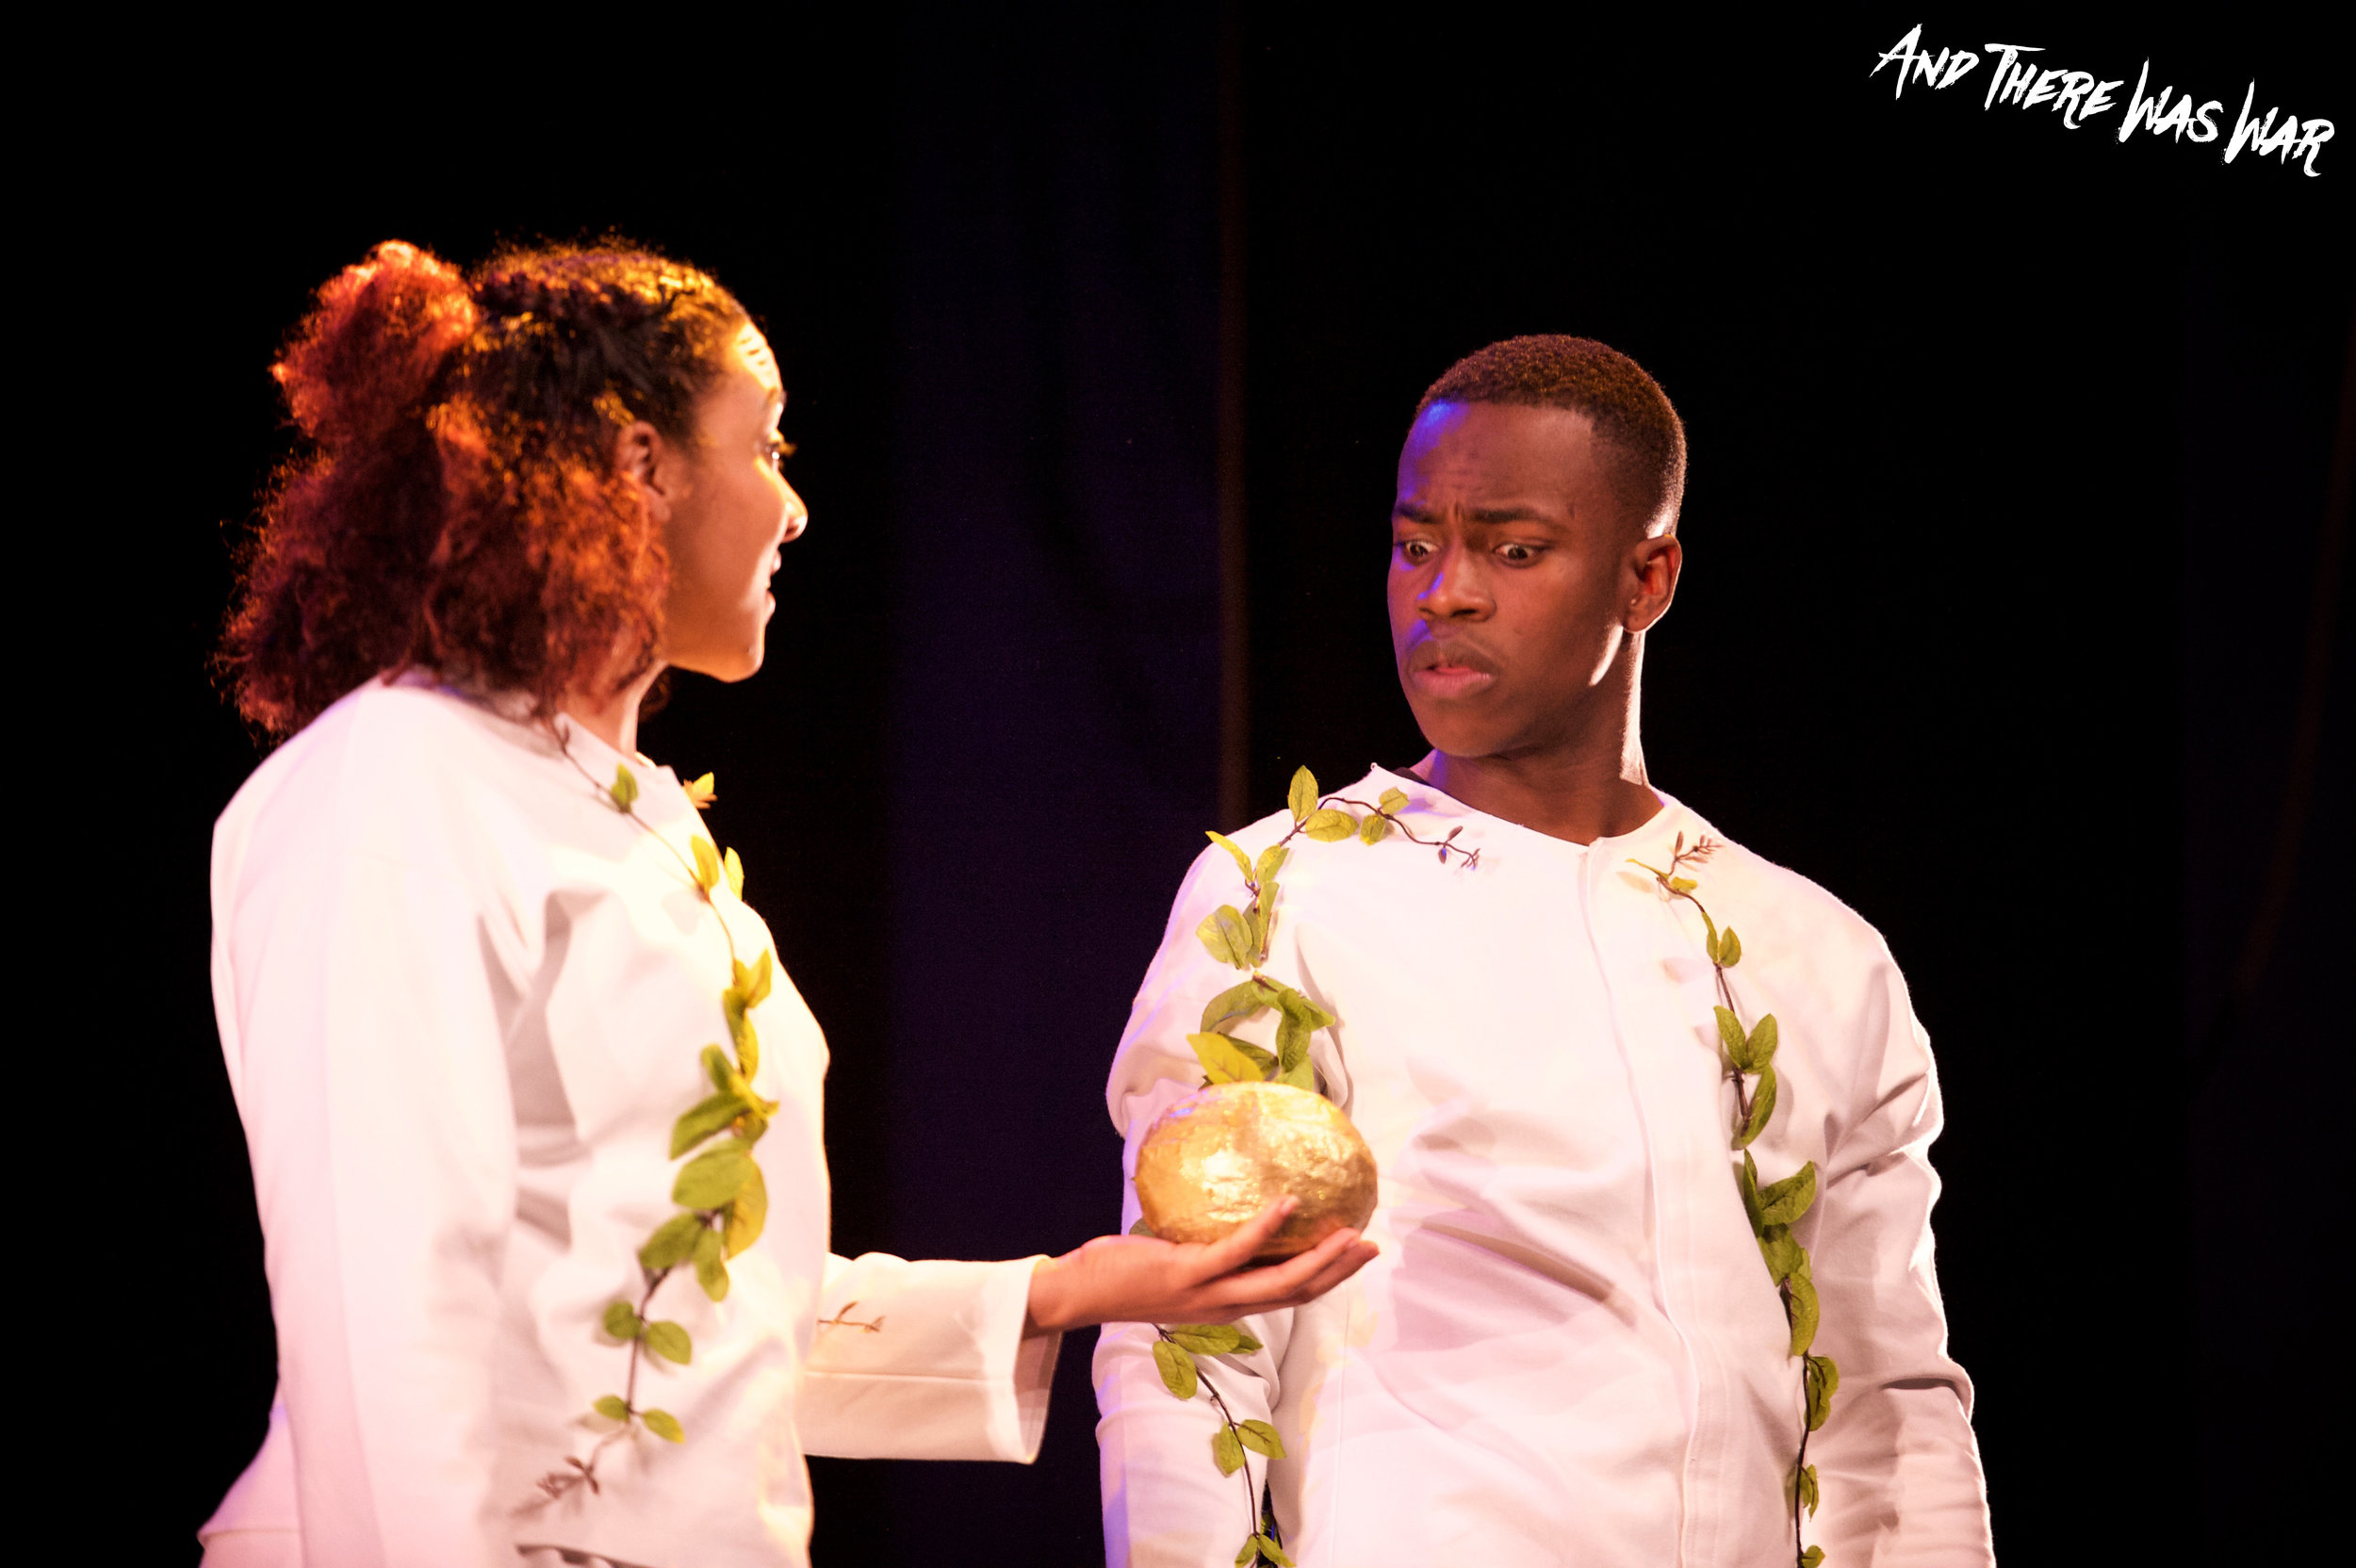 My Love/Her Love - The My Love/her Love programme is based on the fall of Adam and Eve. It explores the most fundamental of all human topics: love. Participants are challenged to consider who or what may be occupying the space where only God should be.